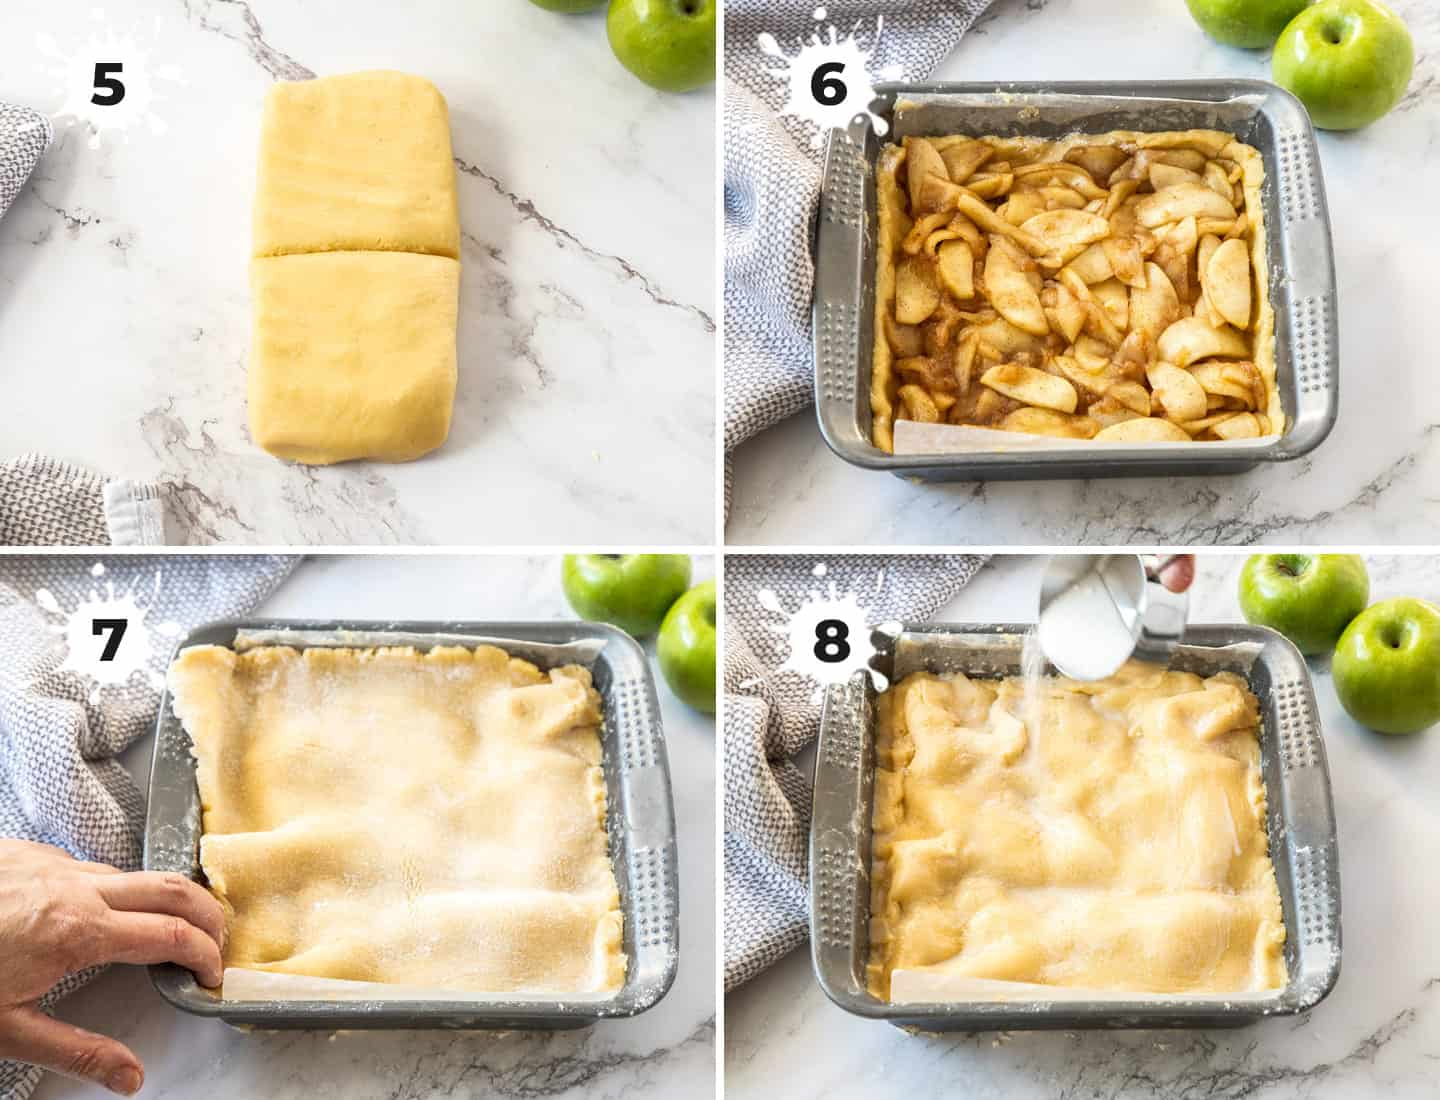 A collage of 4 images showing how to assemble the apple shortcake.